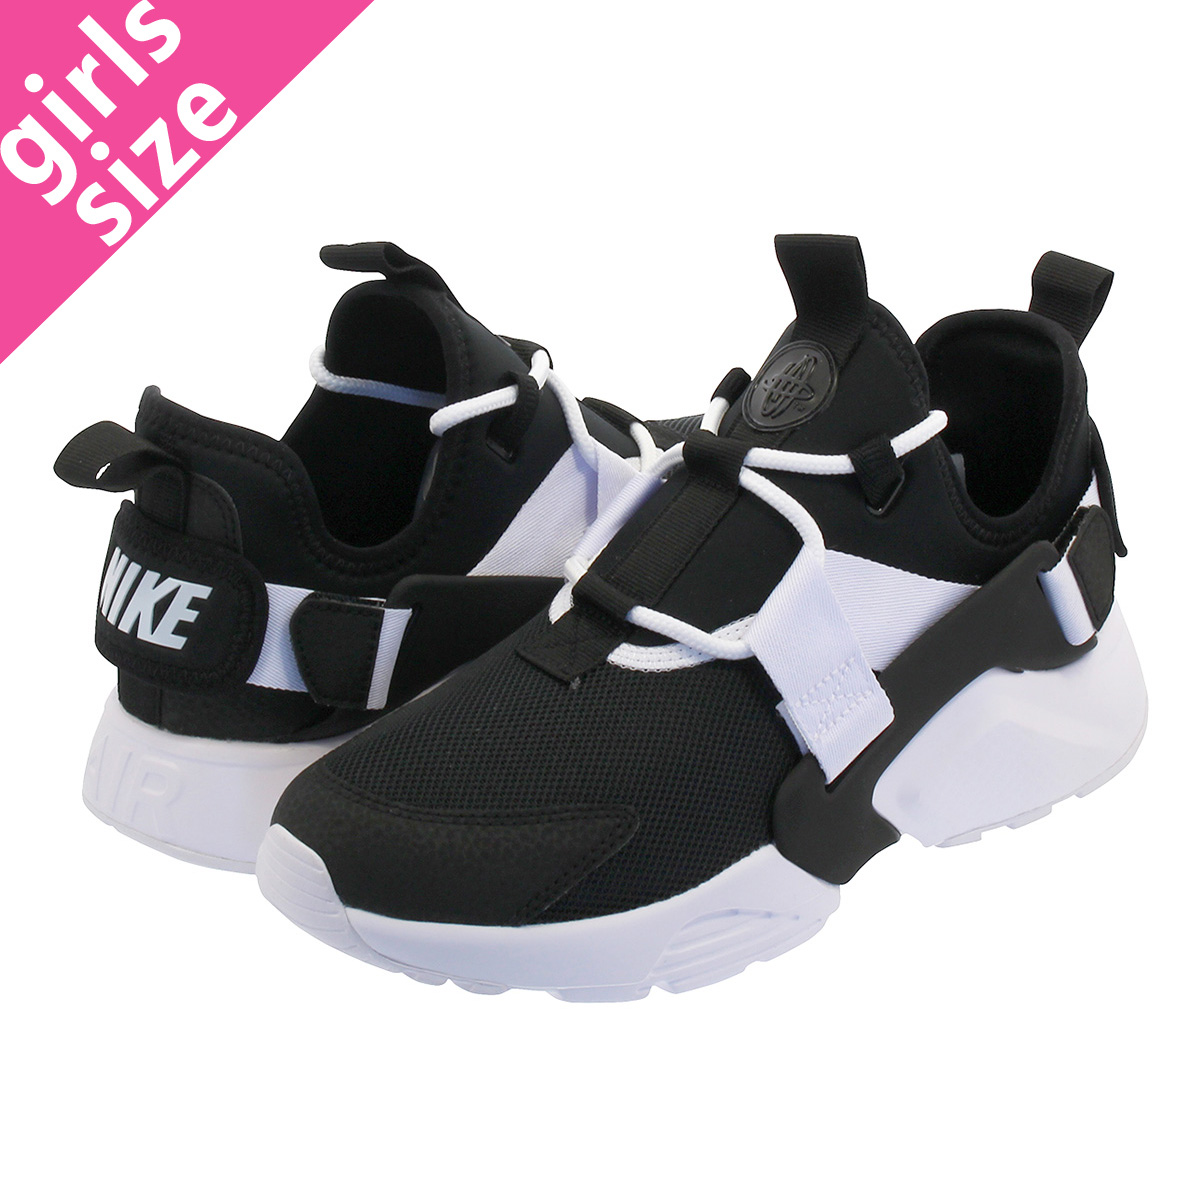 SELECT SHOP LOWTEX  NIKE WMNS AIR HUARACHE CITY LOW ナイキウィメンズエアハラチシティロー  BLACK BLACK WHITE ah6804-002  8d1e5e4b1